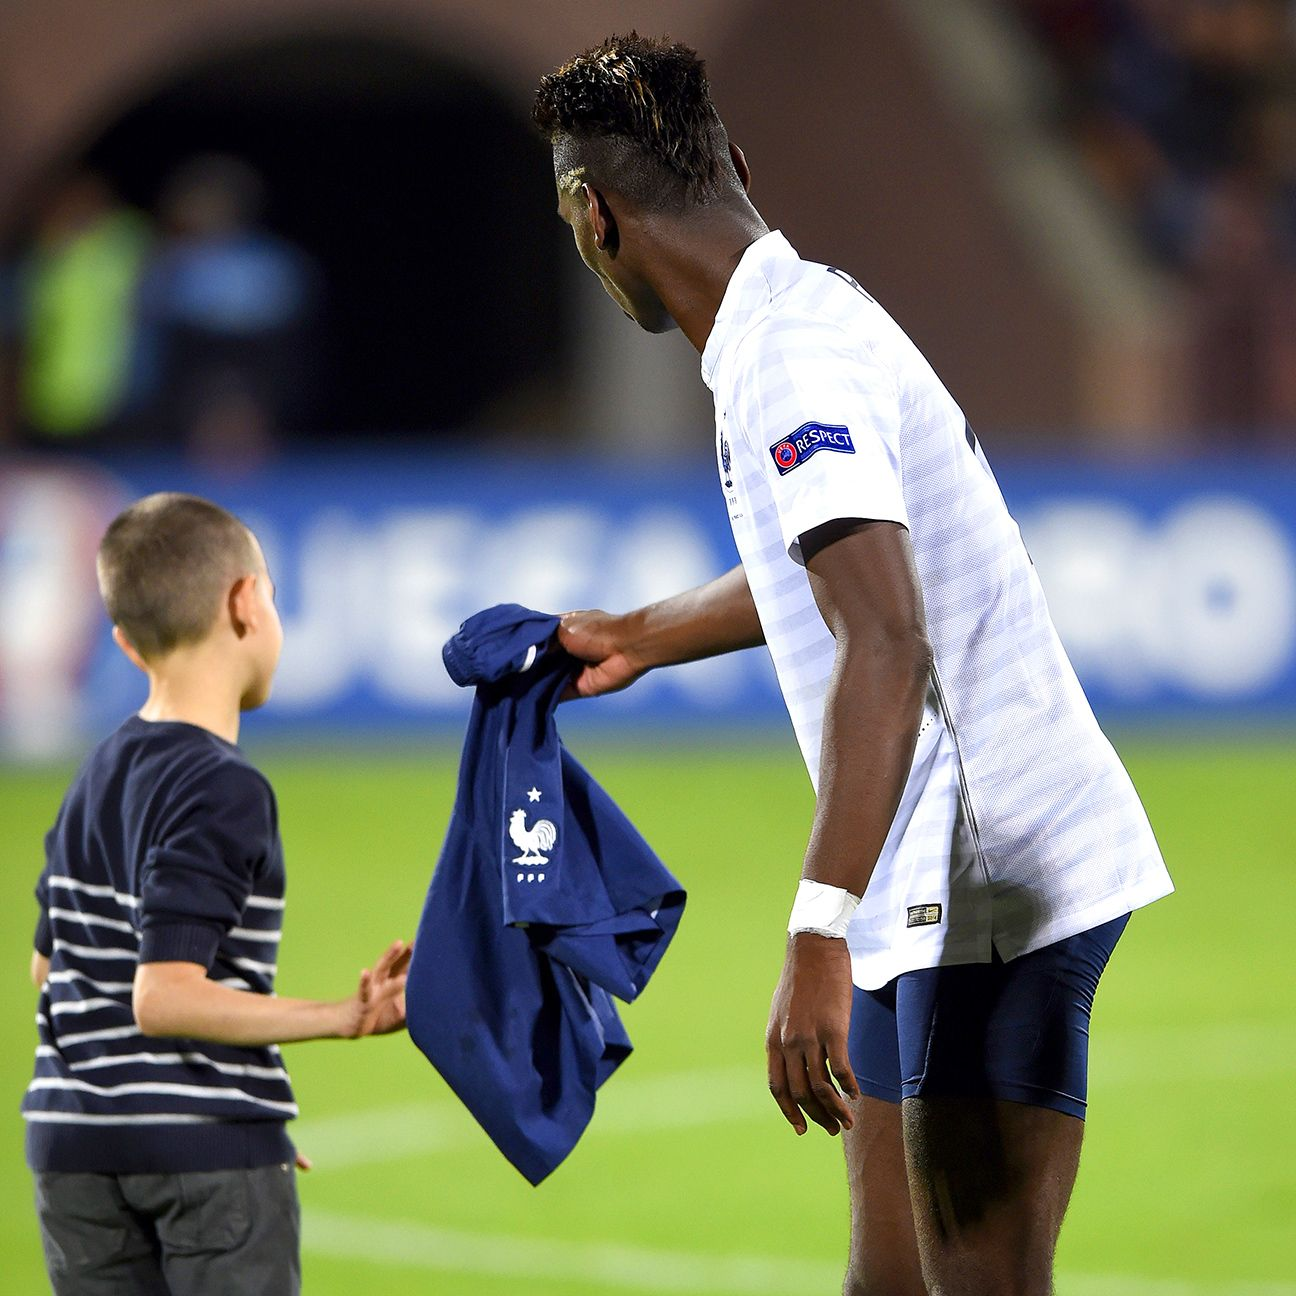 Paul Pogba's offer of game-worn shorts wasn't a big hit.